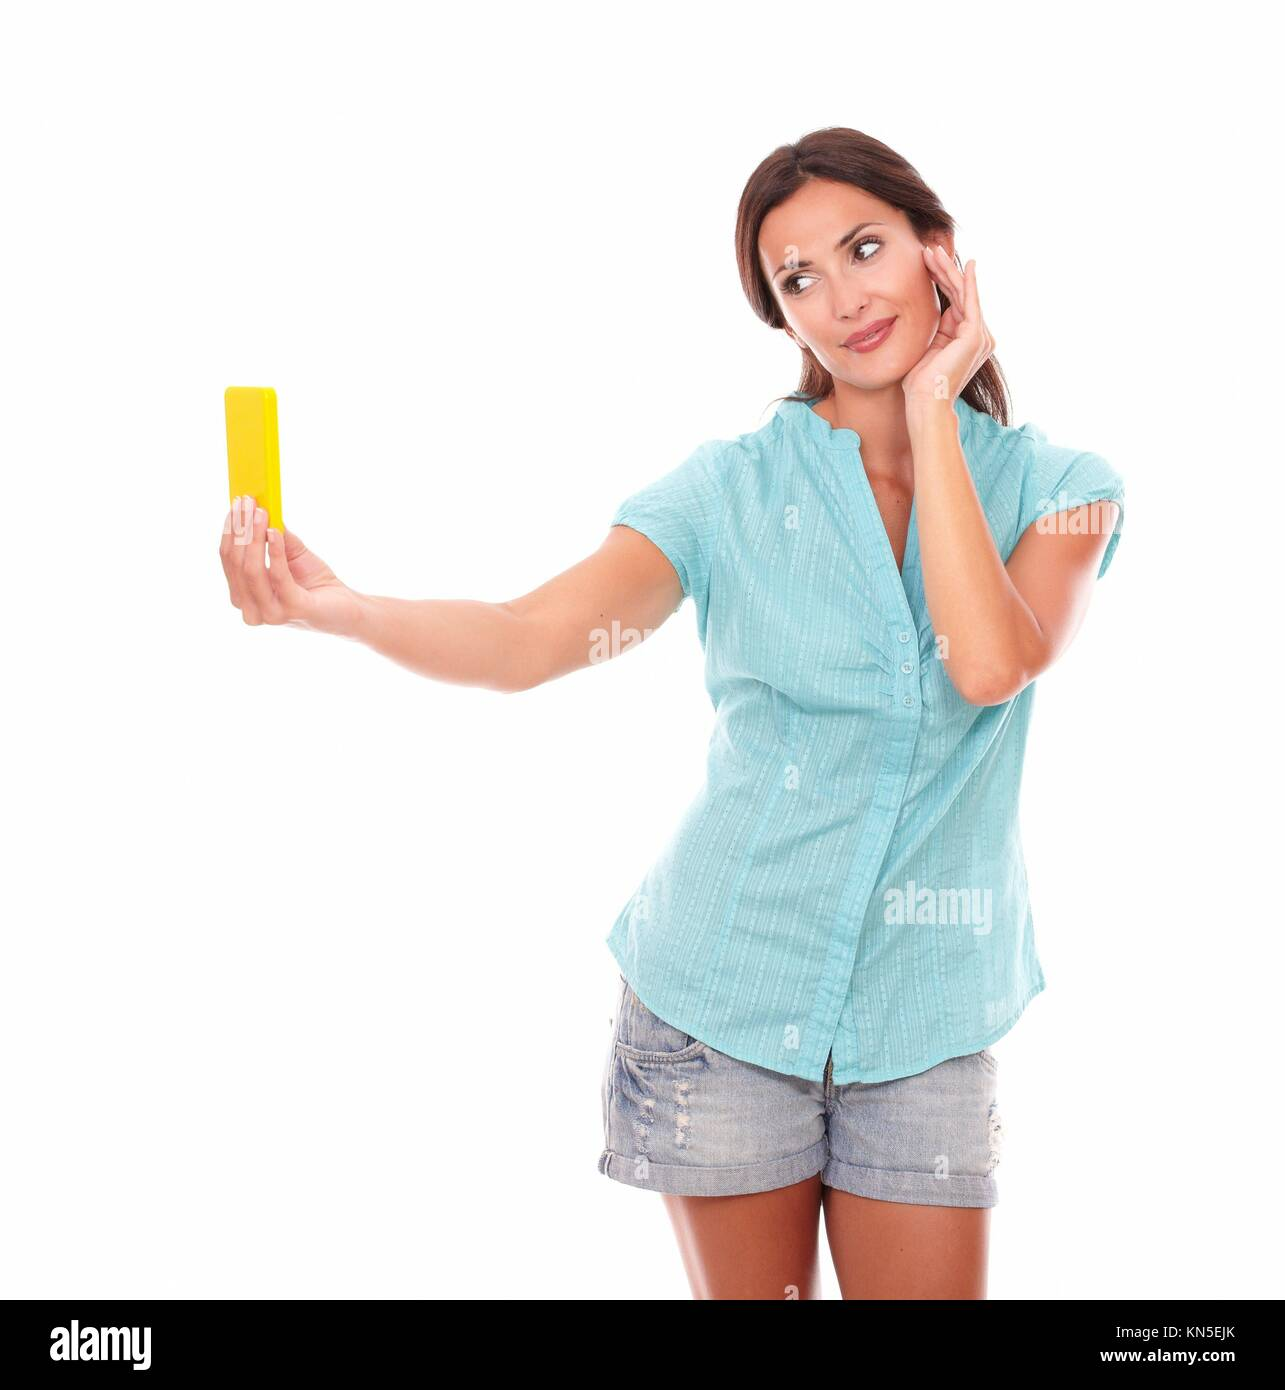 Attractive female taking photos of herself or selfie using a yellow mobile phone while smiling in white background. - Stock Image